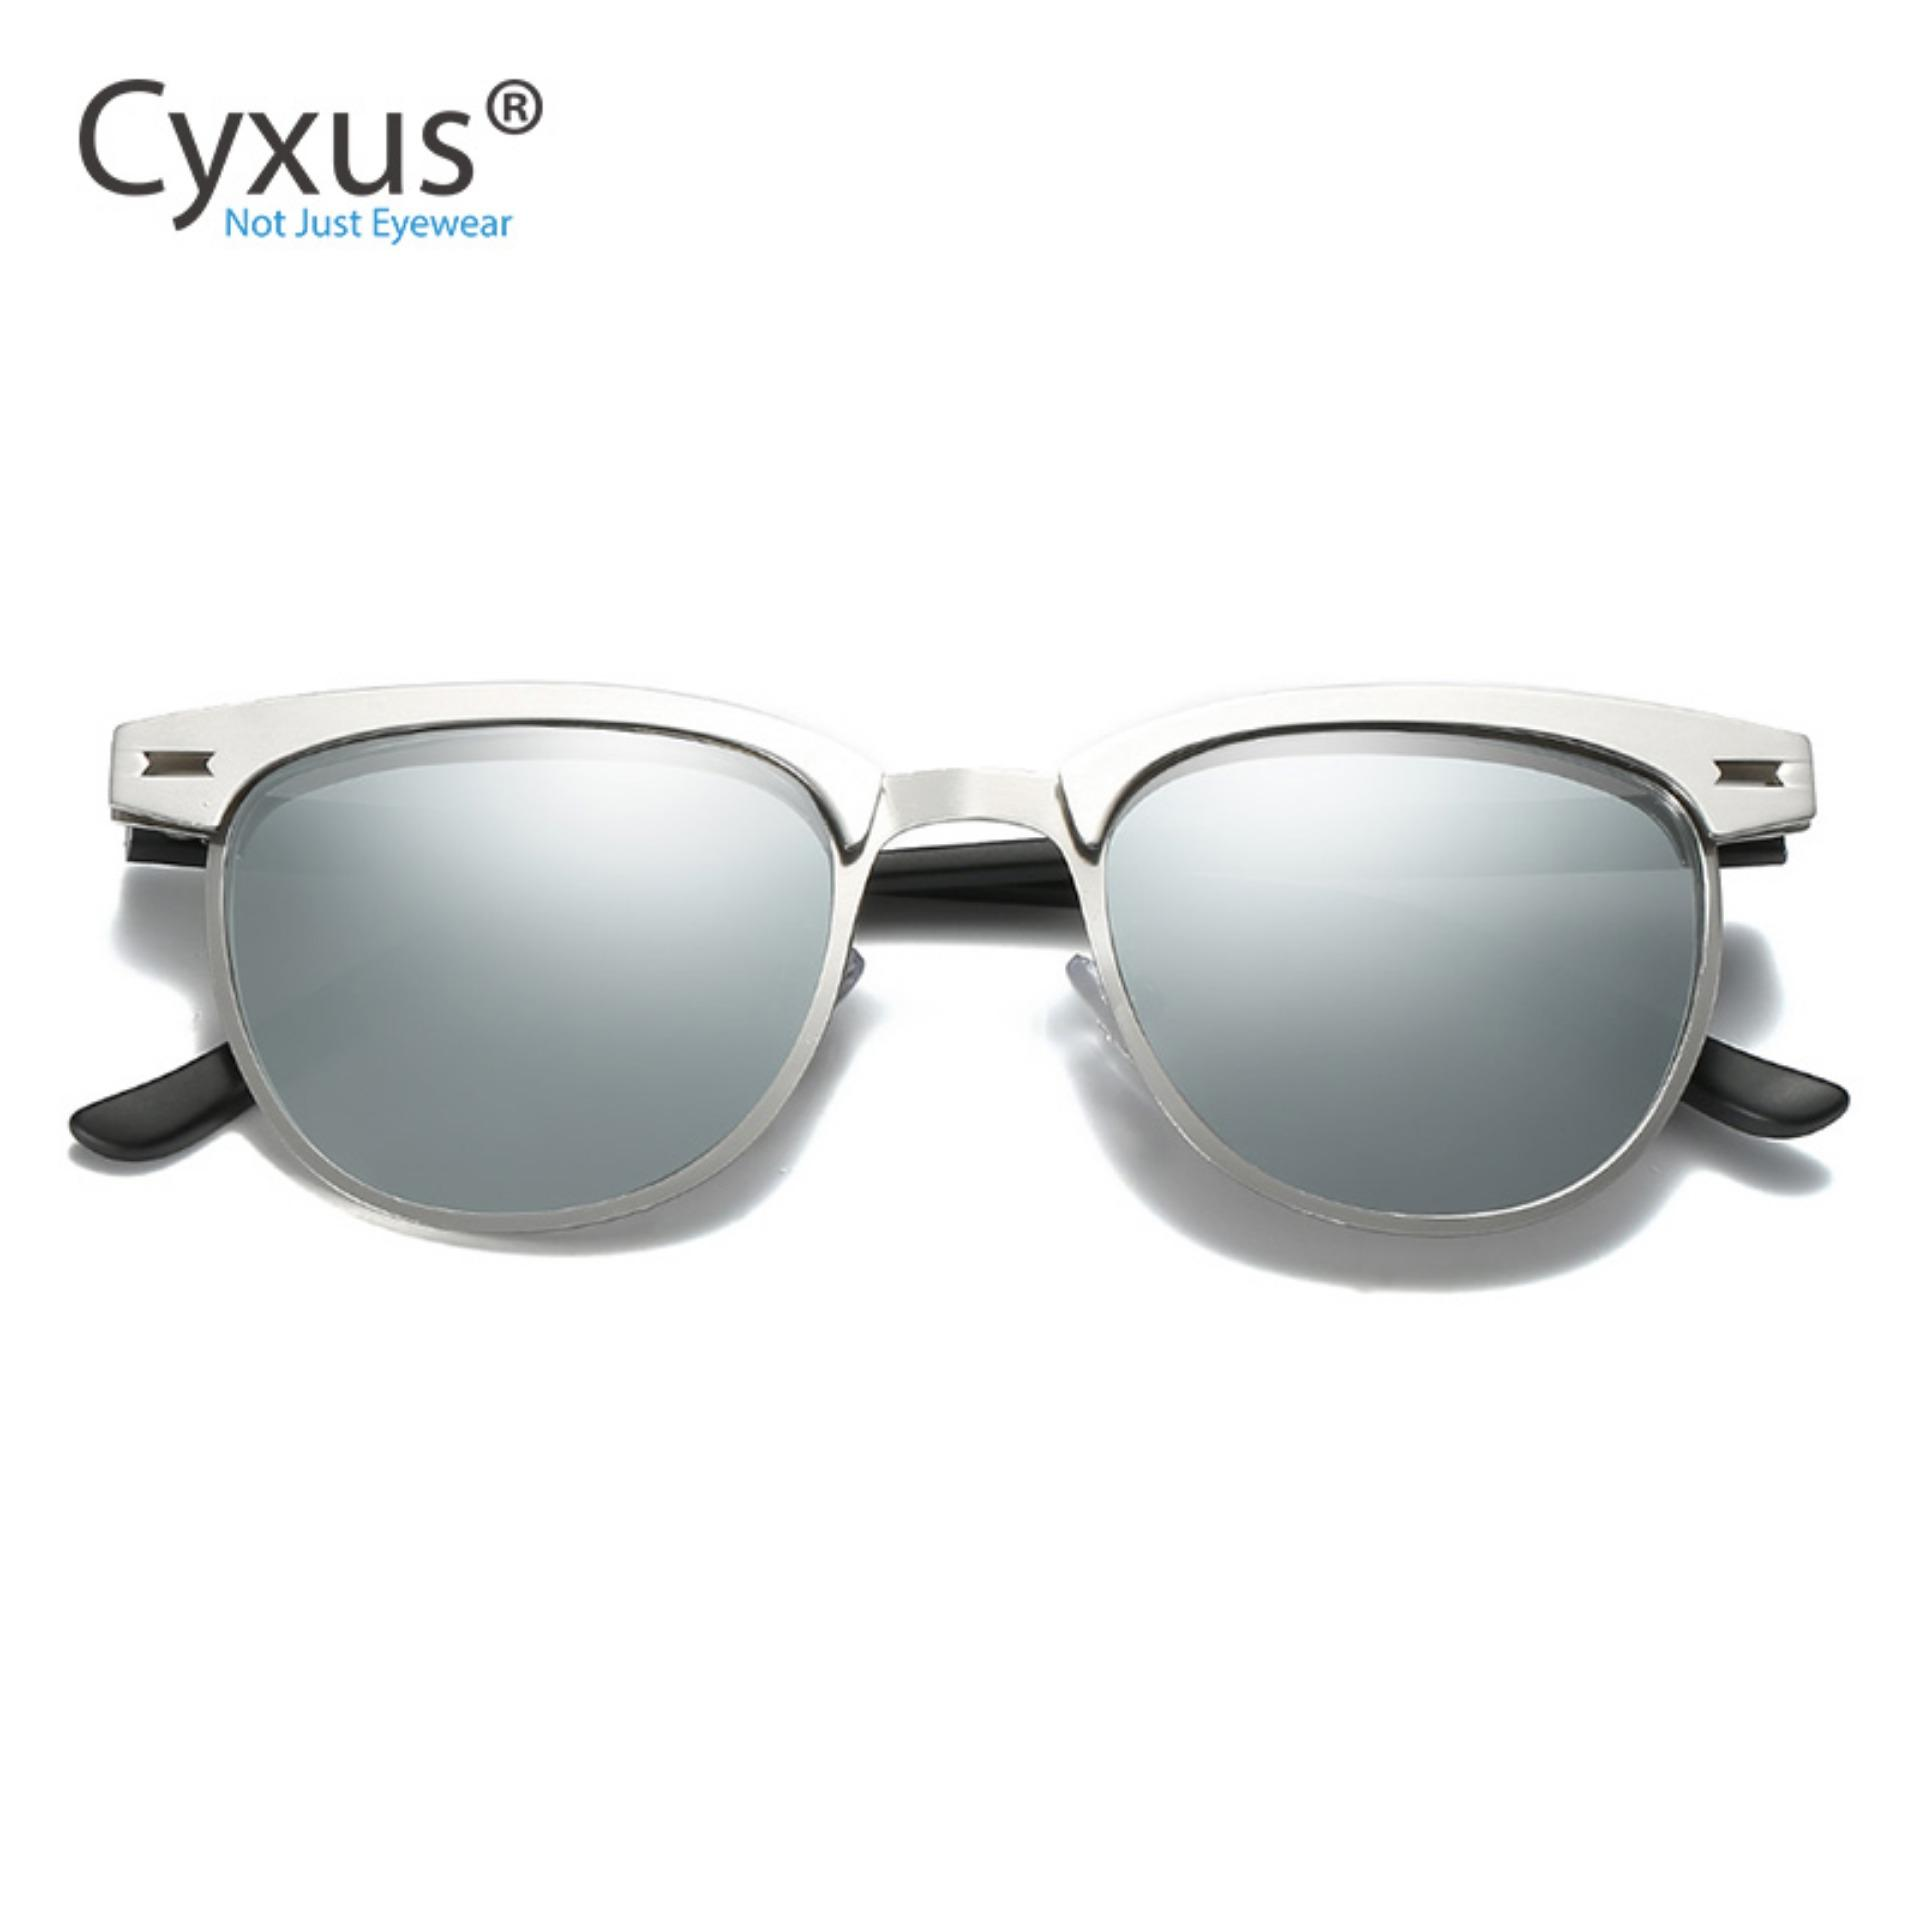 1117a7840551 Unisex Sunglasses for sale - Simple Sunglasses online brands, prices ...